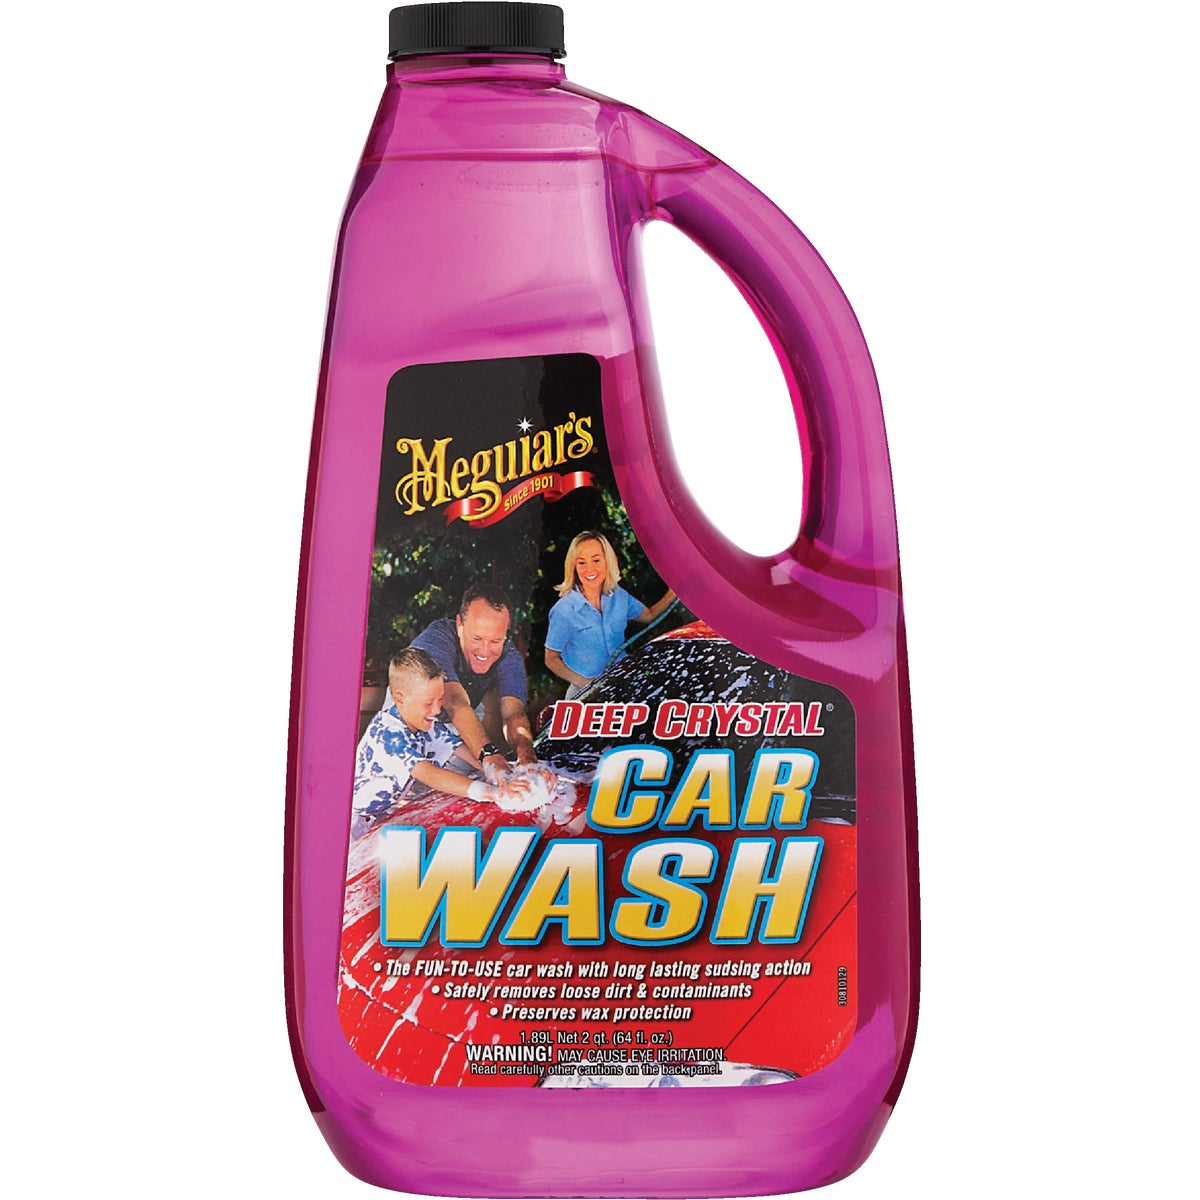 DEEP CRYSTAL CAR WASH - G10464 by Meguiars Inc